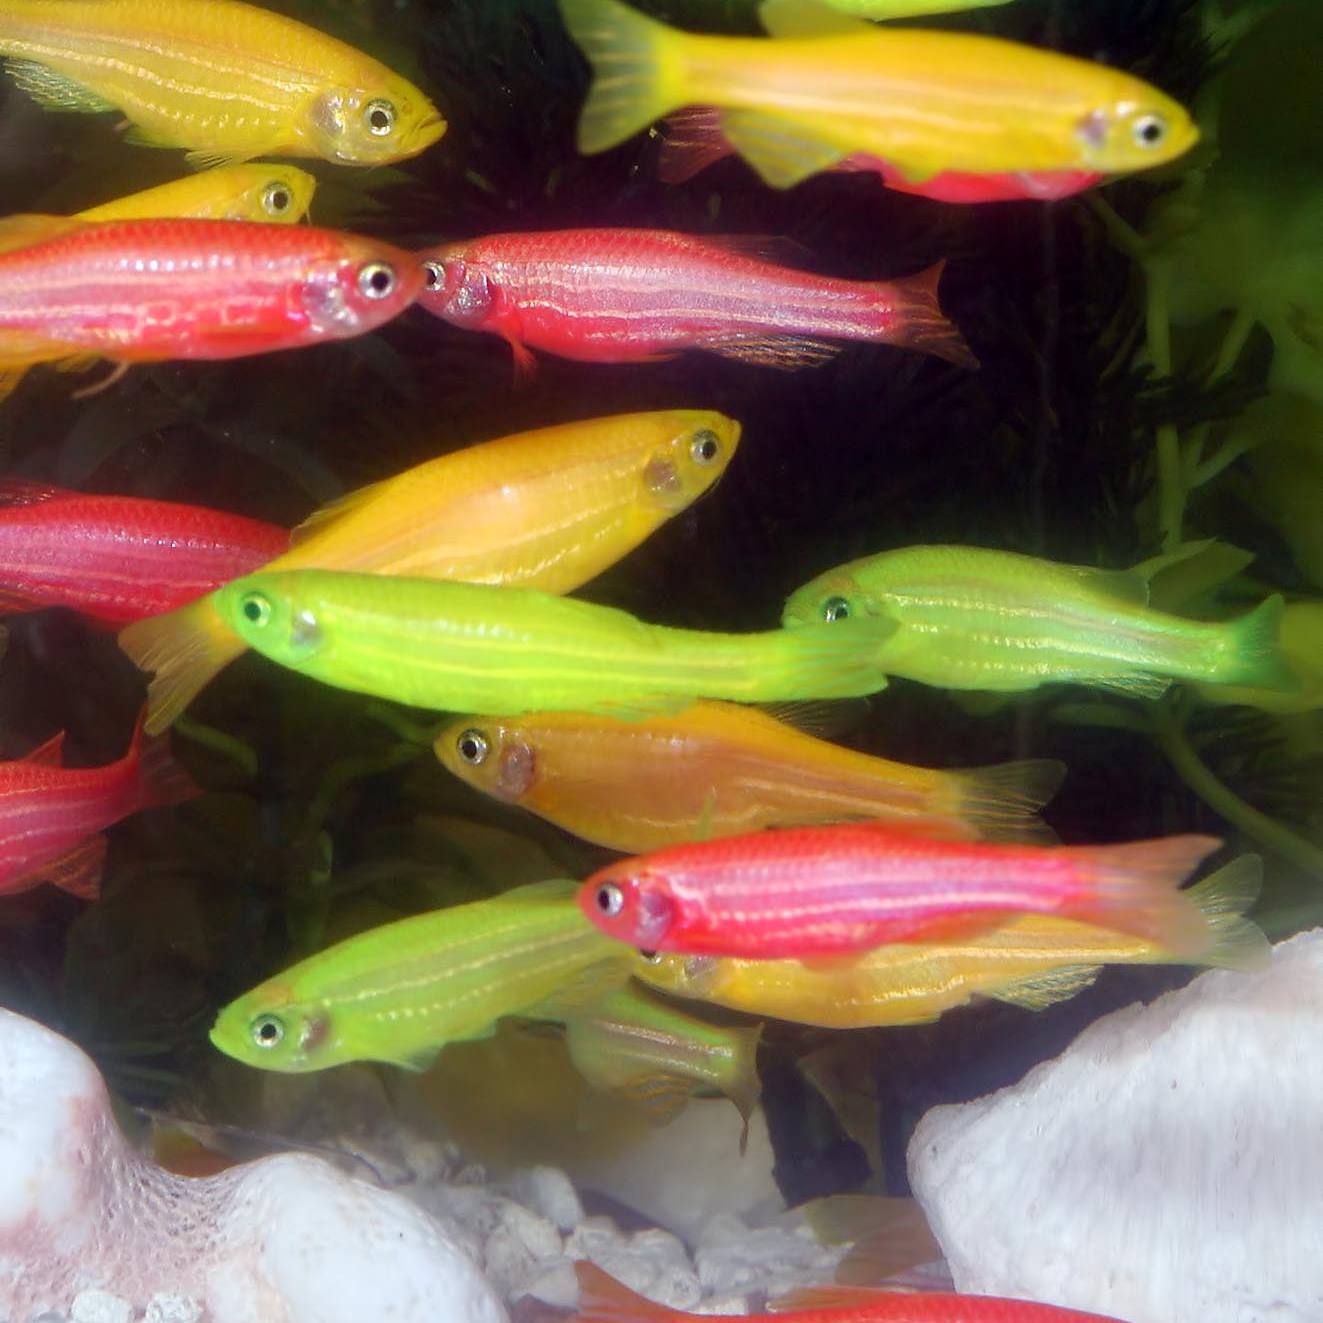 GloFish genetically modified fluorescent fish get their glowing color from GFP.